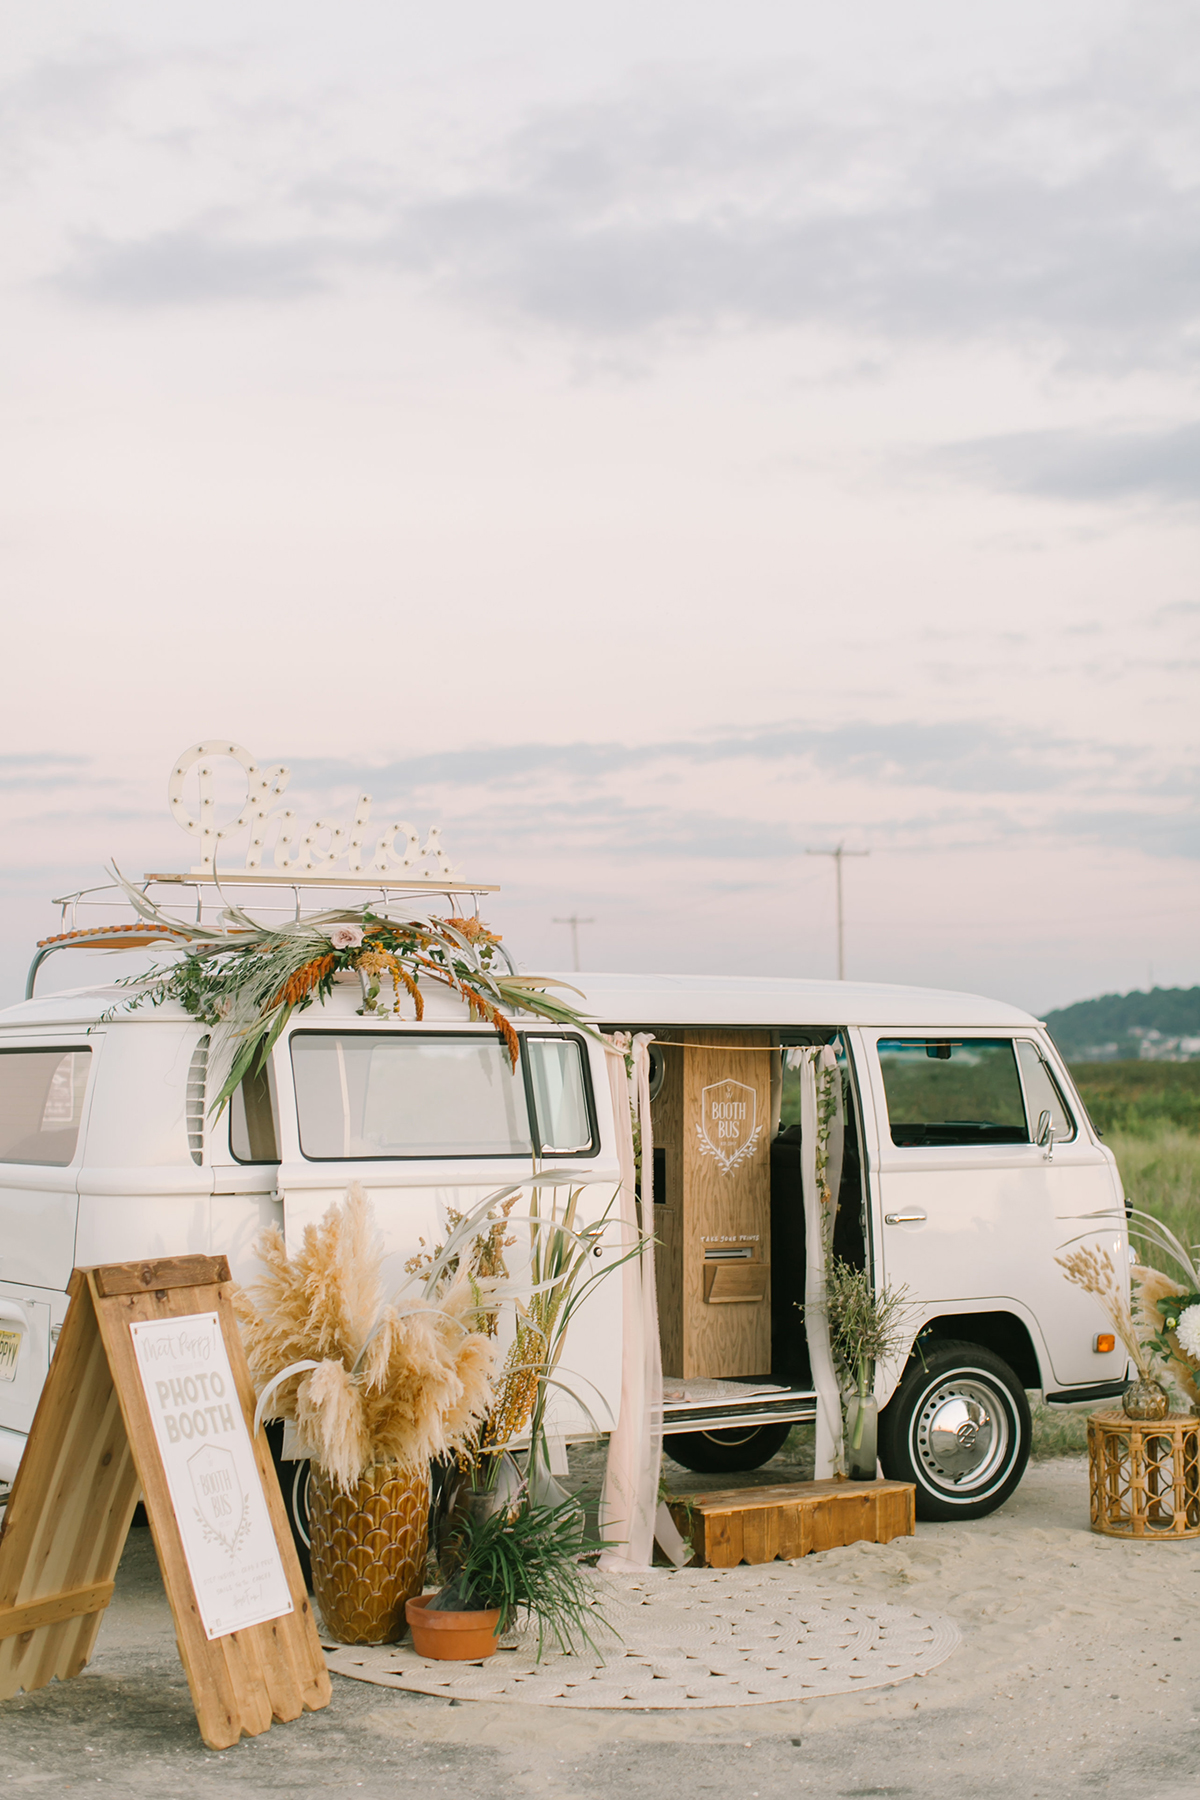 VW photo booth bus - http://ruffledblog.com/september-sunsets-wedding-inspiration-with-a-vw-bus